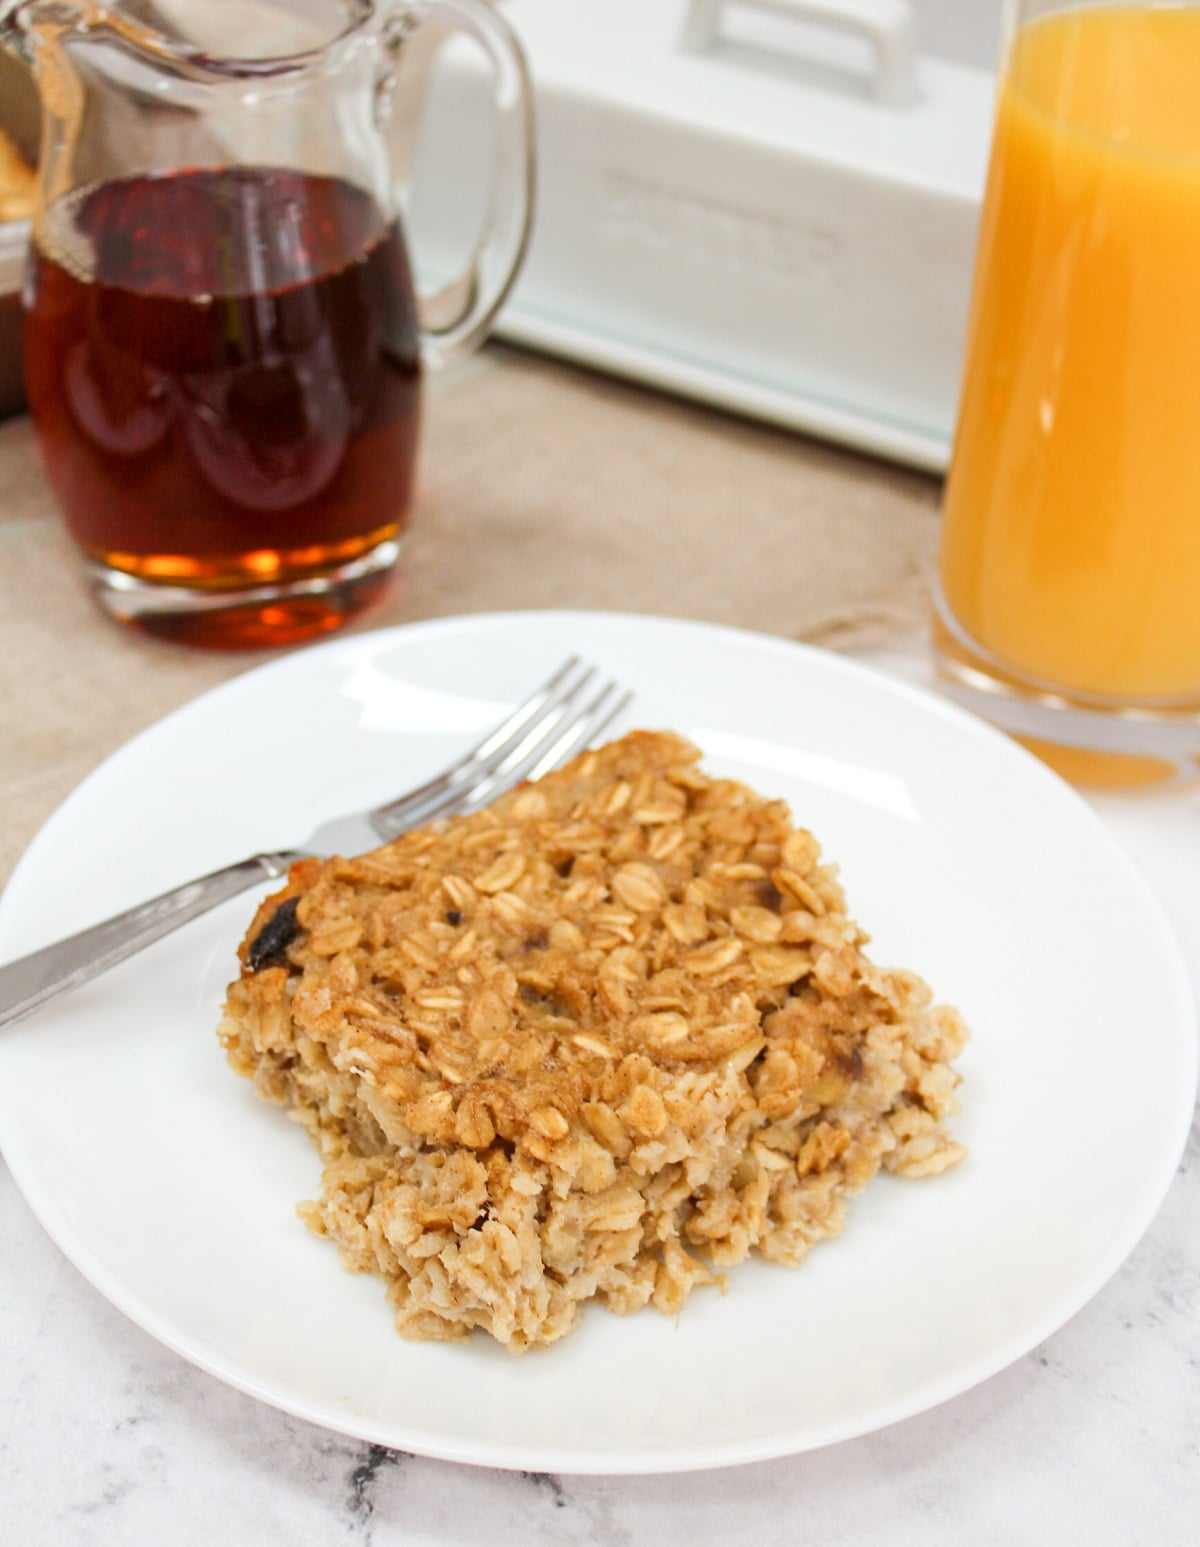 plated oatmeal with fork